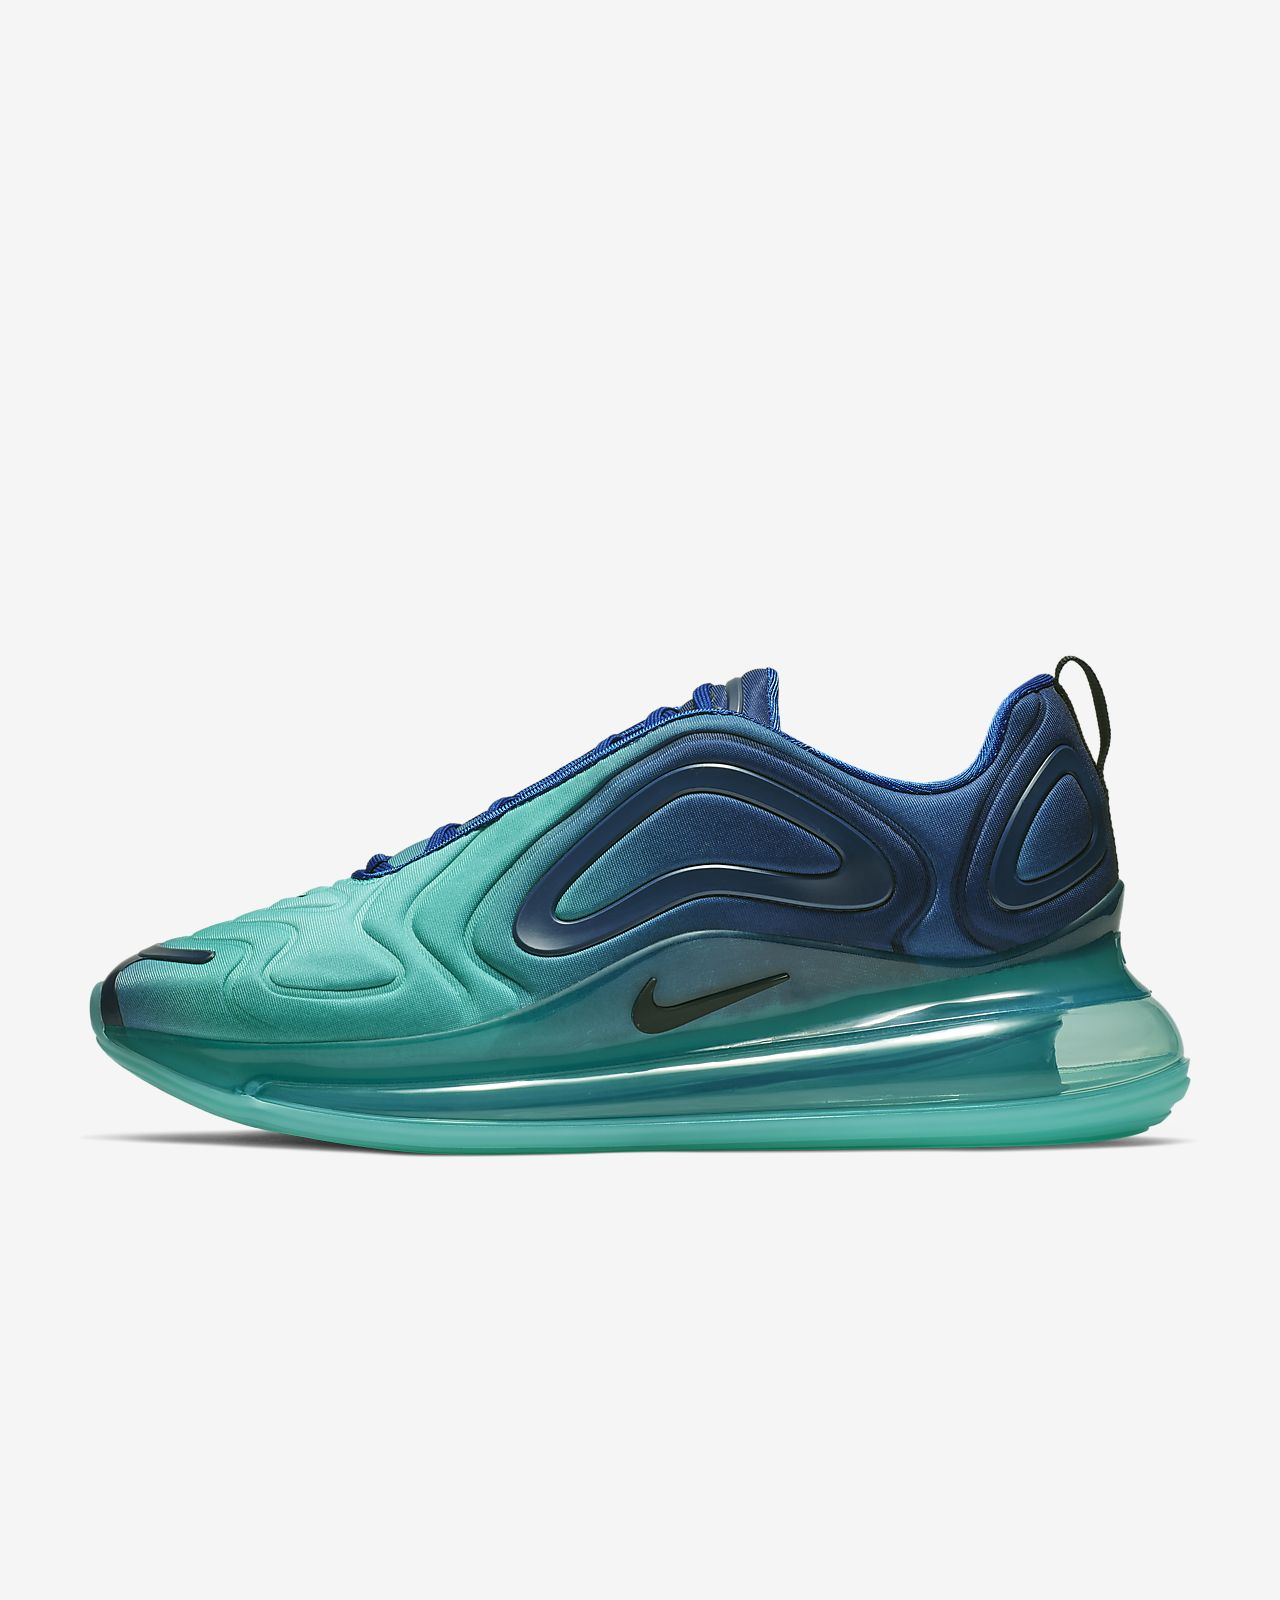 5101a768b0c73 Nike Air Max 720 Men's Shoe